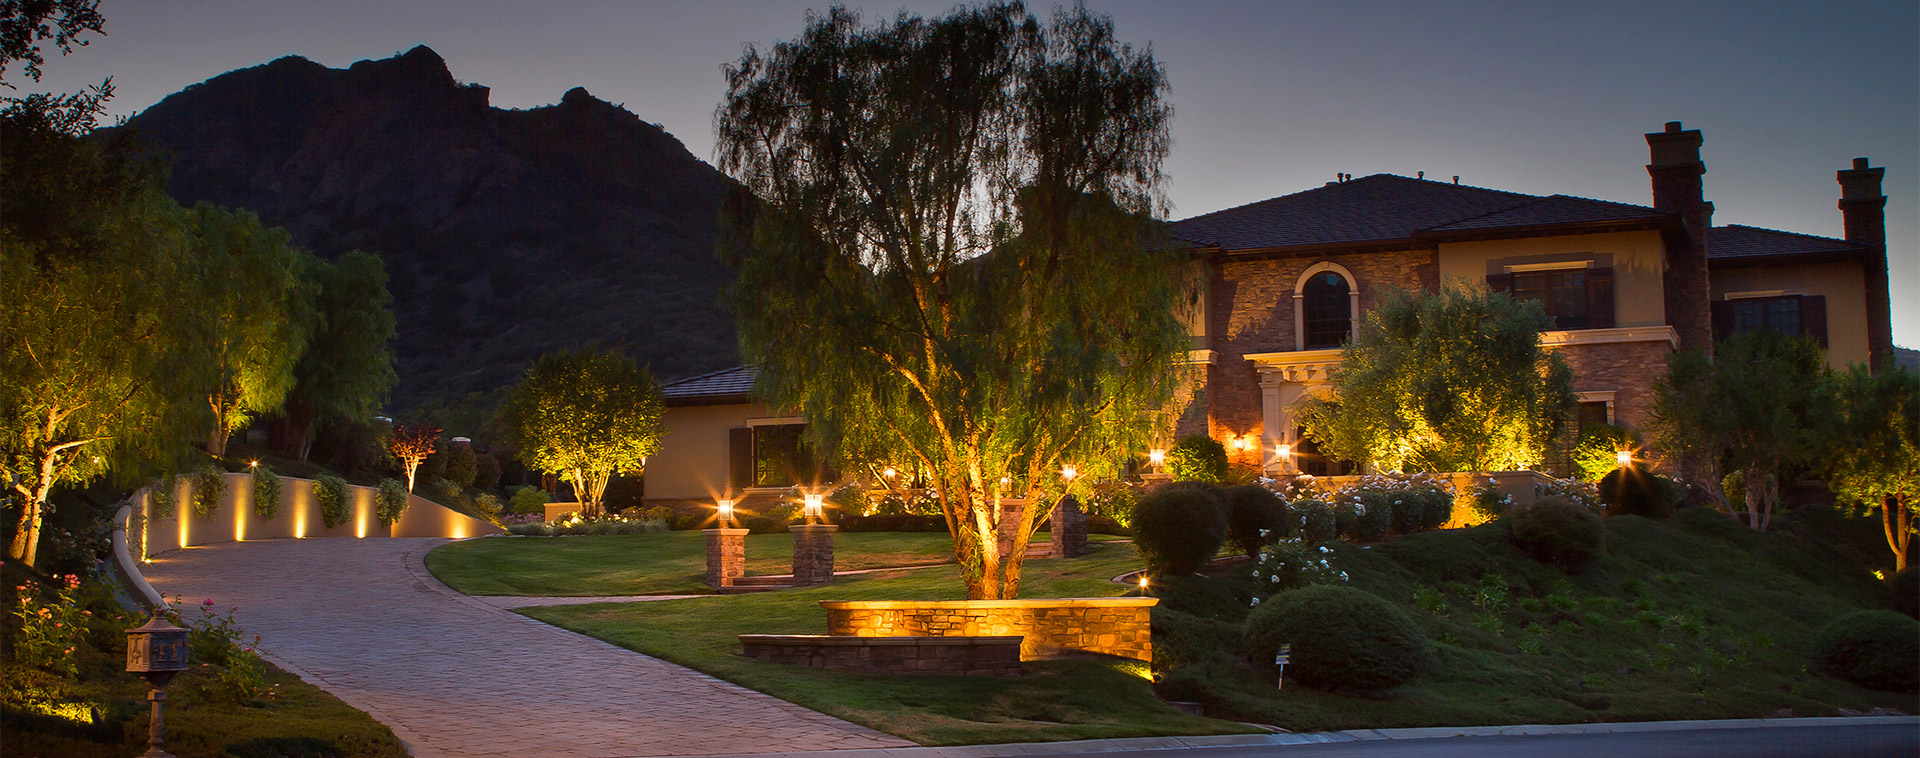 Outdoor Lighting for Homes